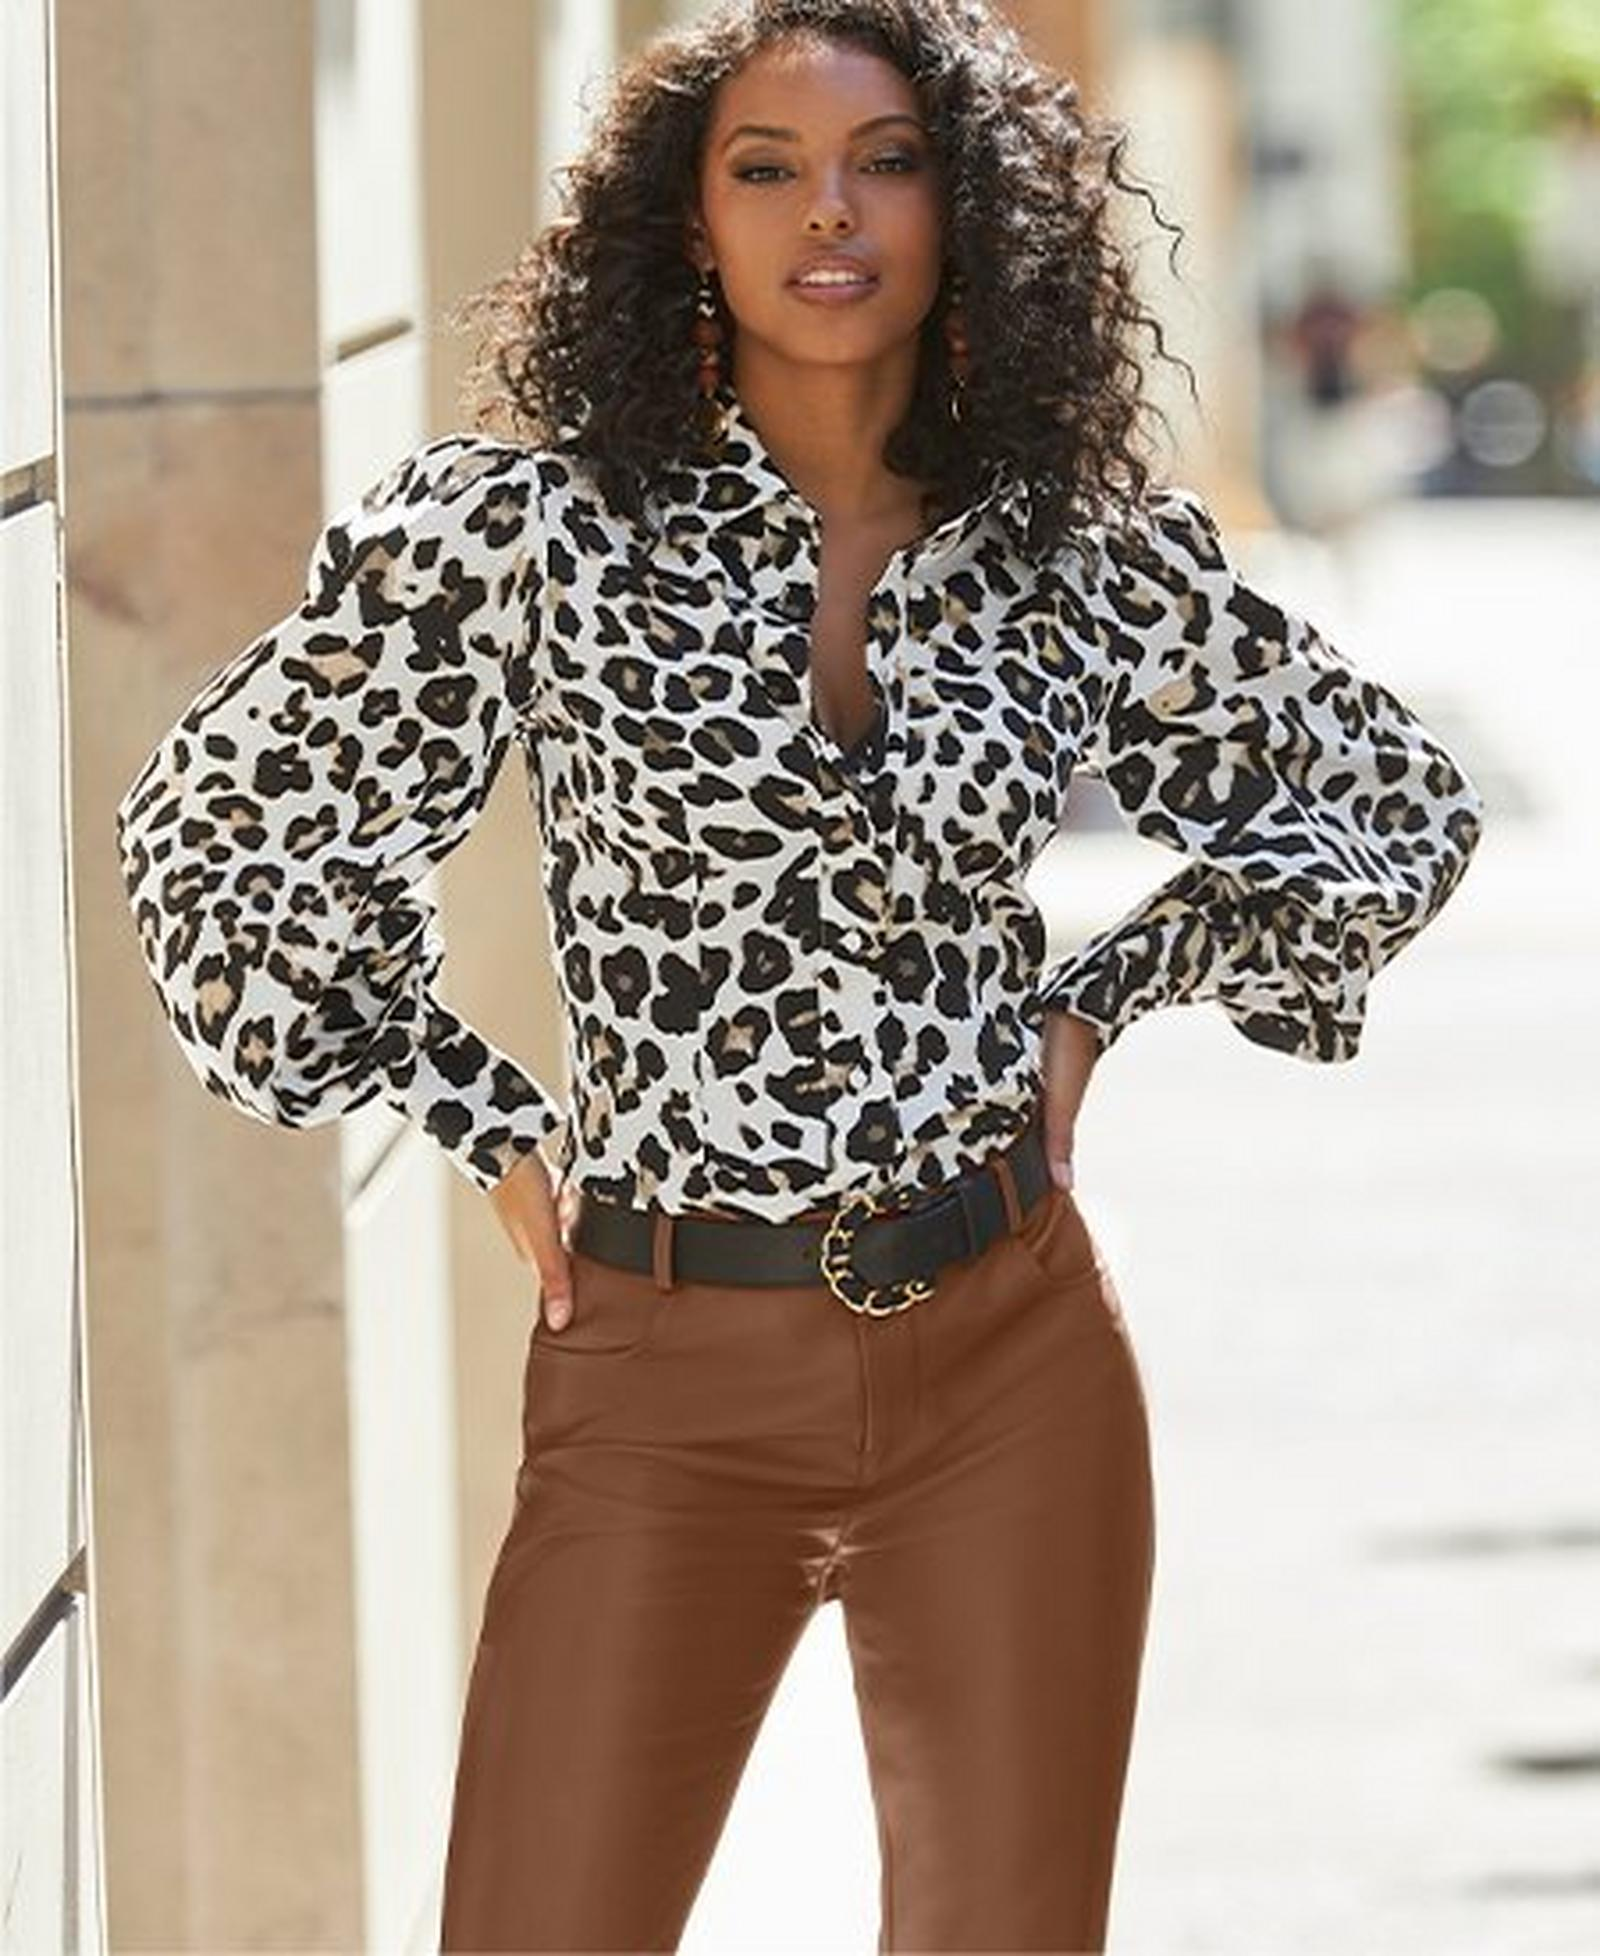 model wearing a leopard print drama sleeve button-down top, black belt, and brown faux-leather pants.